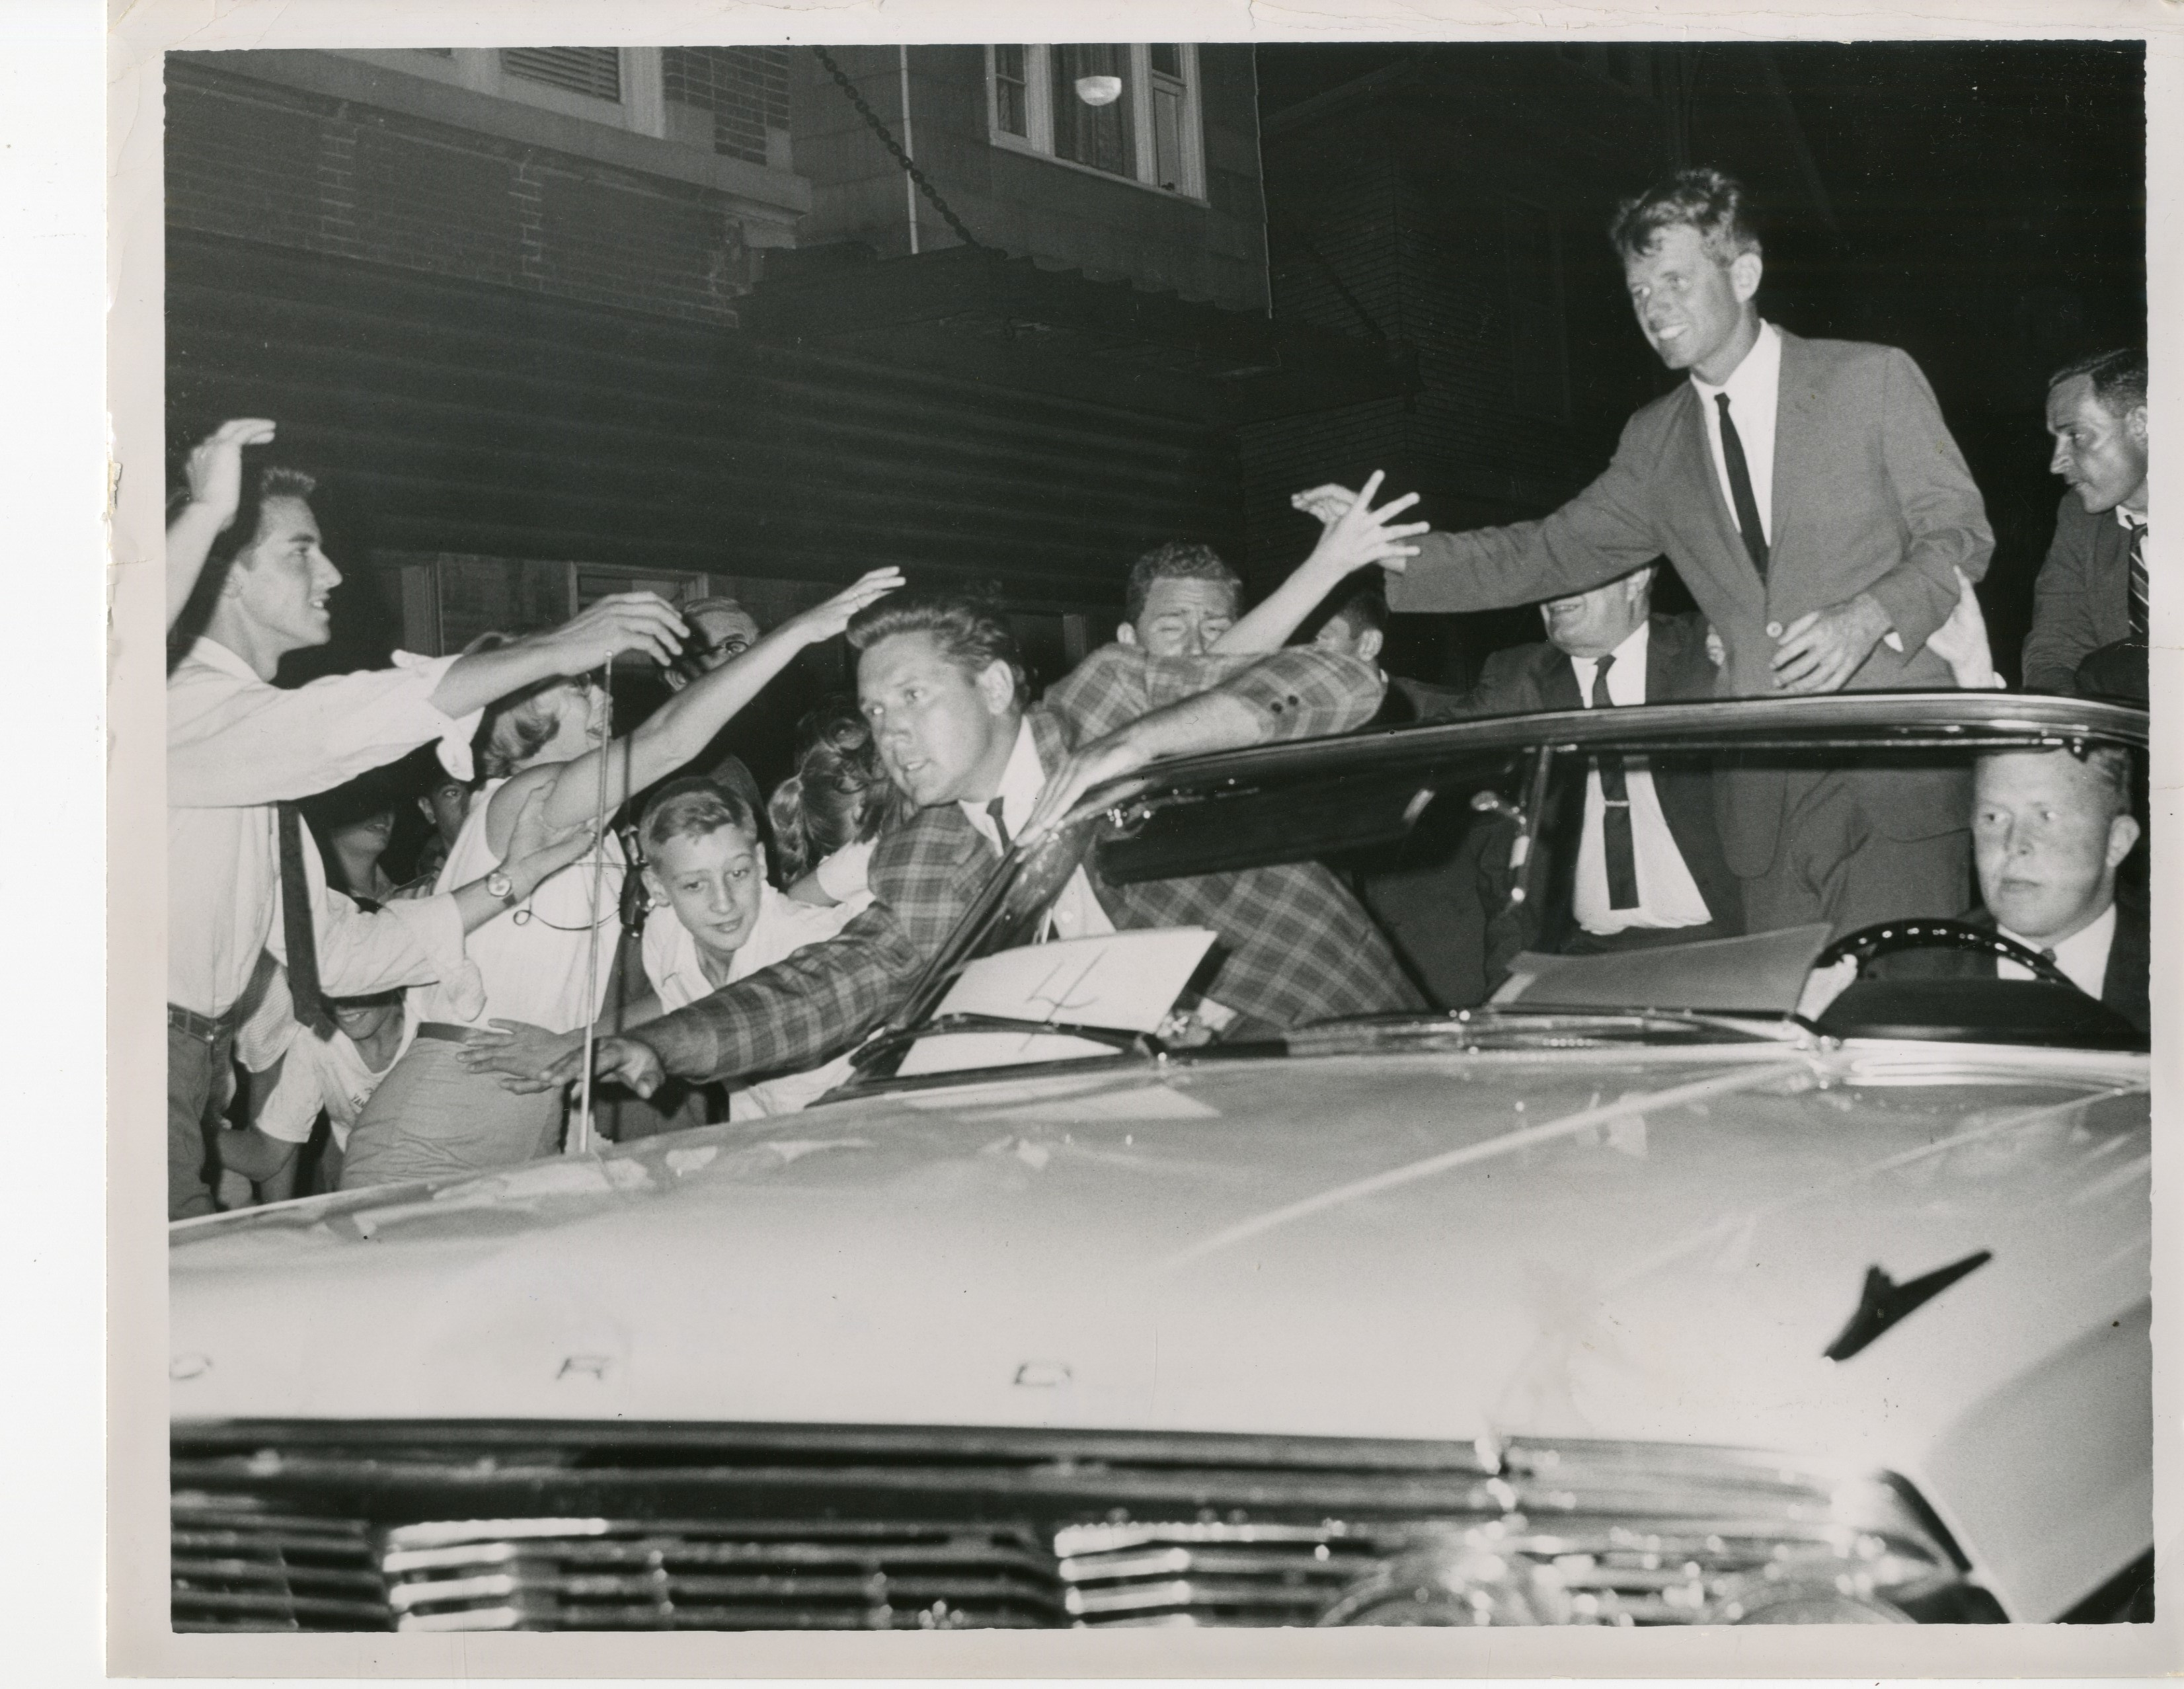 Robert Kennedy gets an enthusiastic welcome in Western New York as motorcade passes. (News file photo)